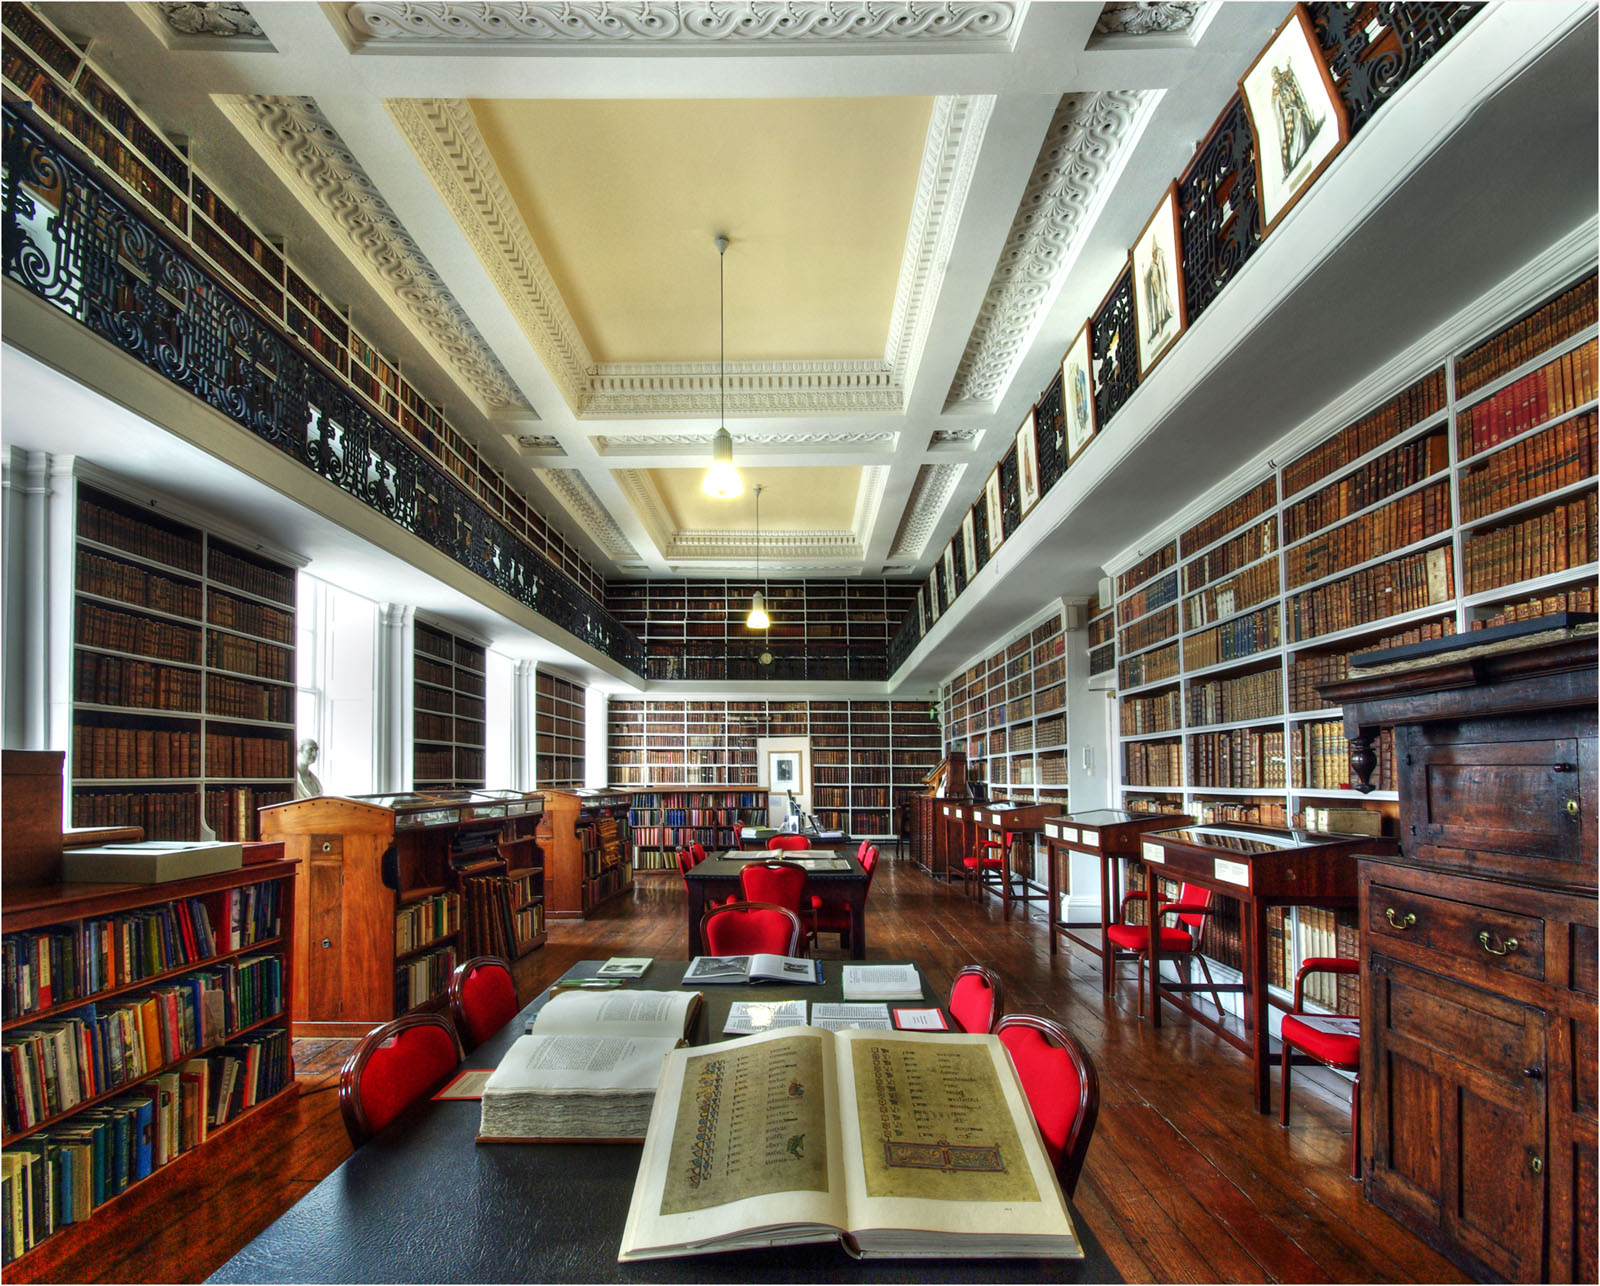 The Long Room venue at Armagh Robinson Library